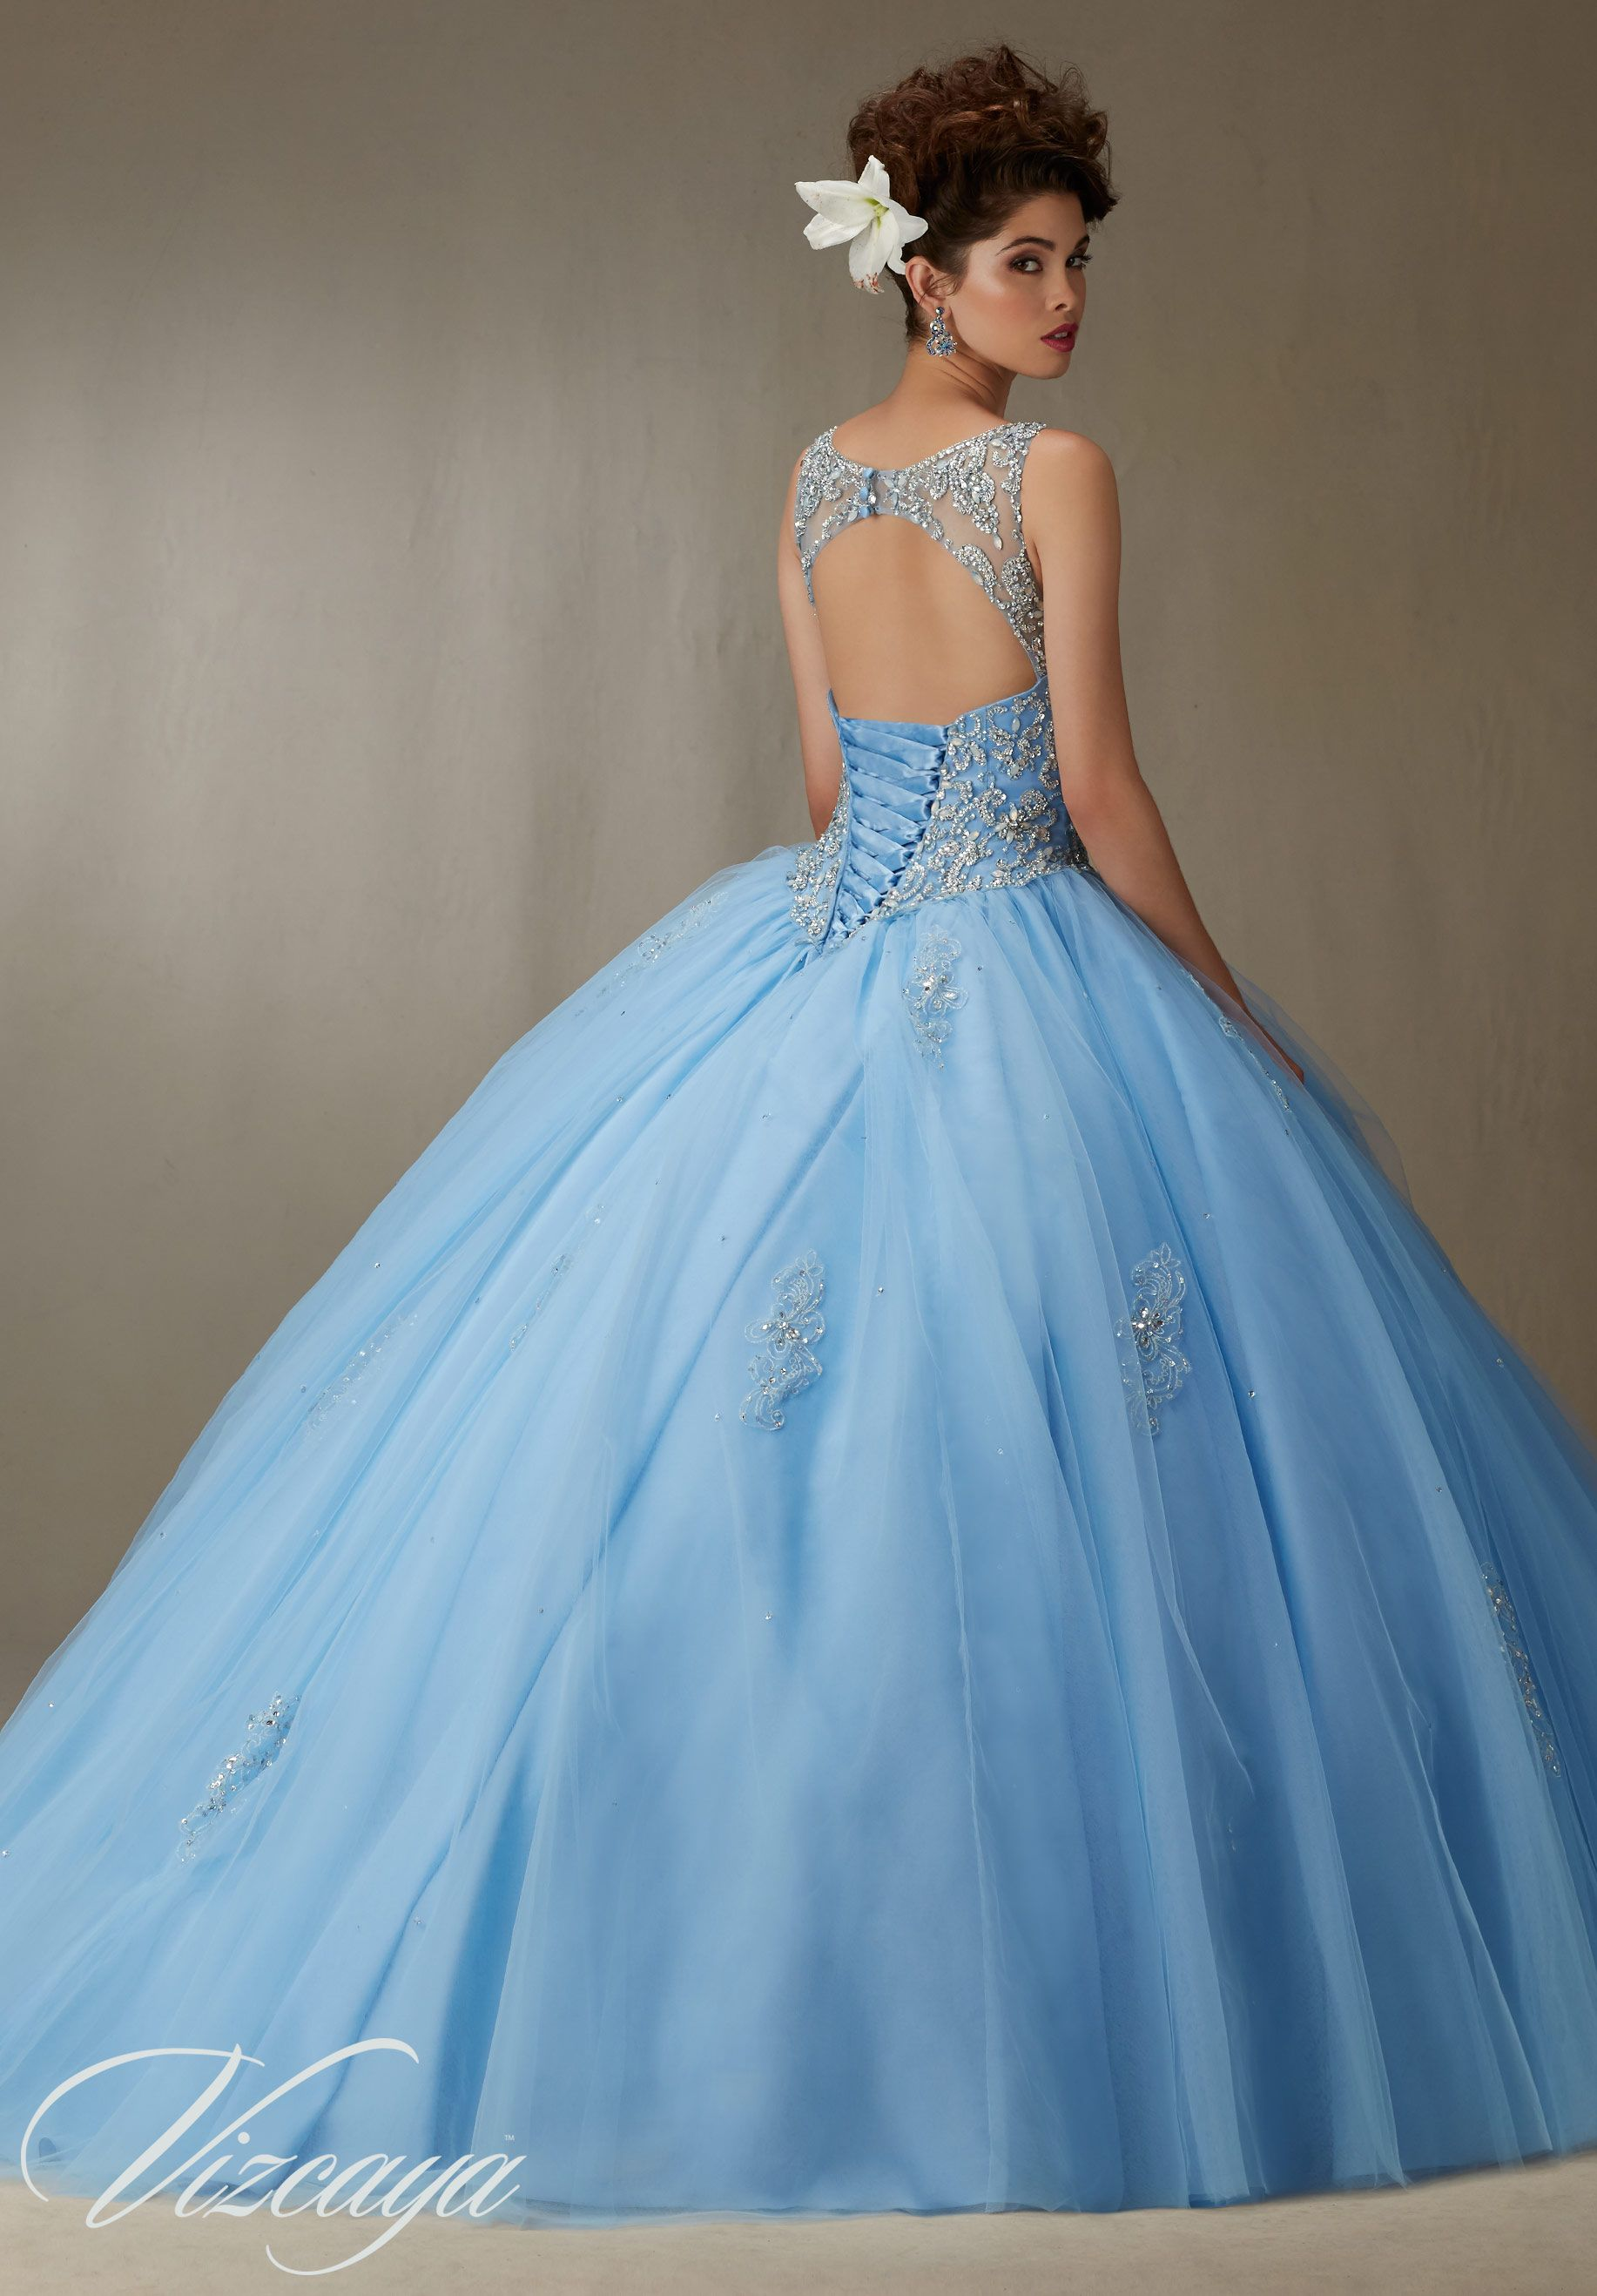 47c52dad5e6 Embroidery and Beading on a Tulle Ball Gown Quinceañera Dress ...